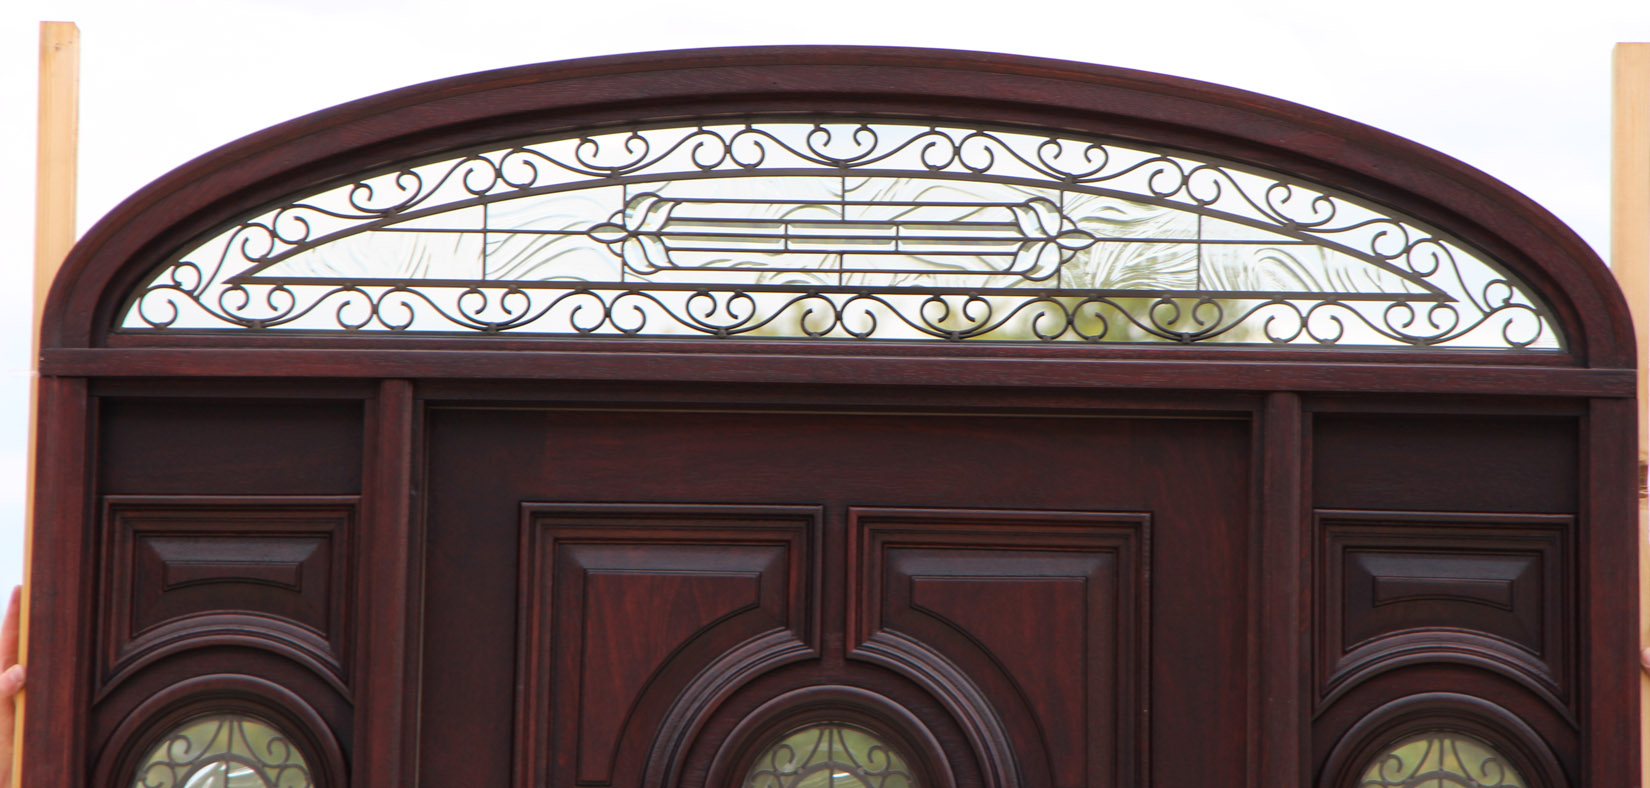 788 #996C32 Exterior Door With Sidelights And Elliptical Transom image Exterior Doors With Sidelights And Transoms 39031650